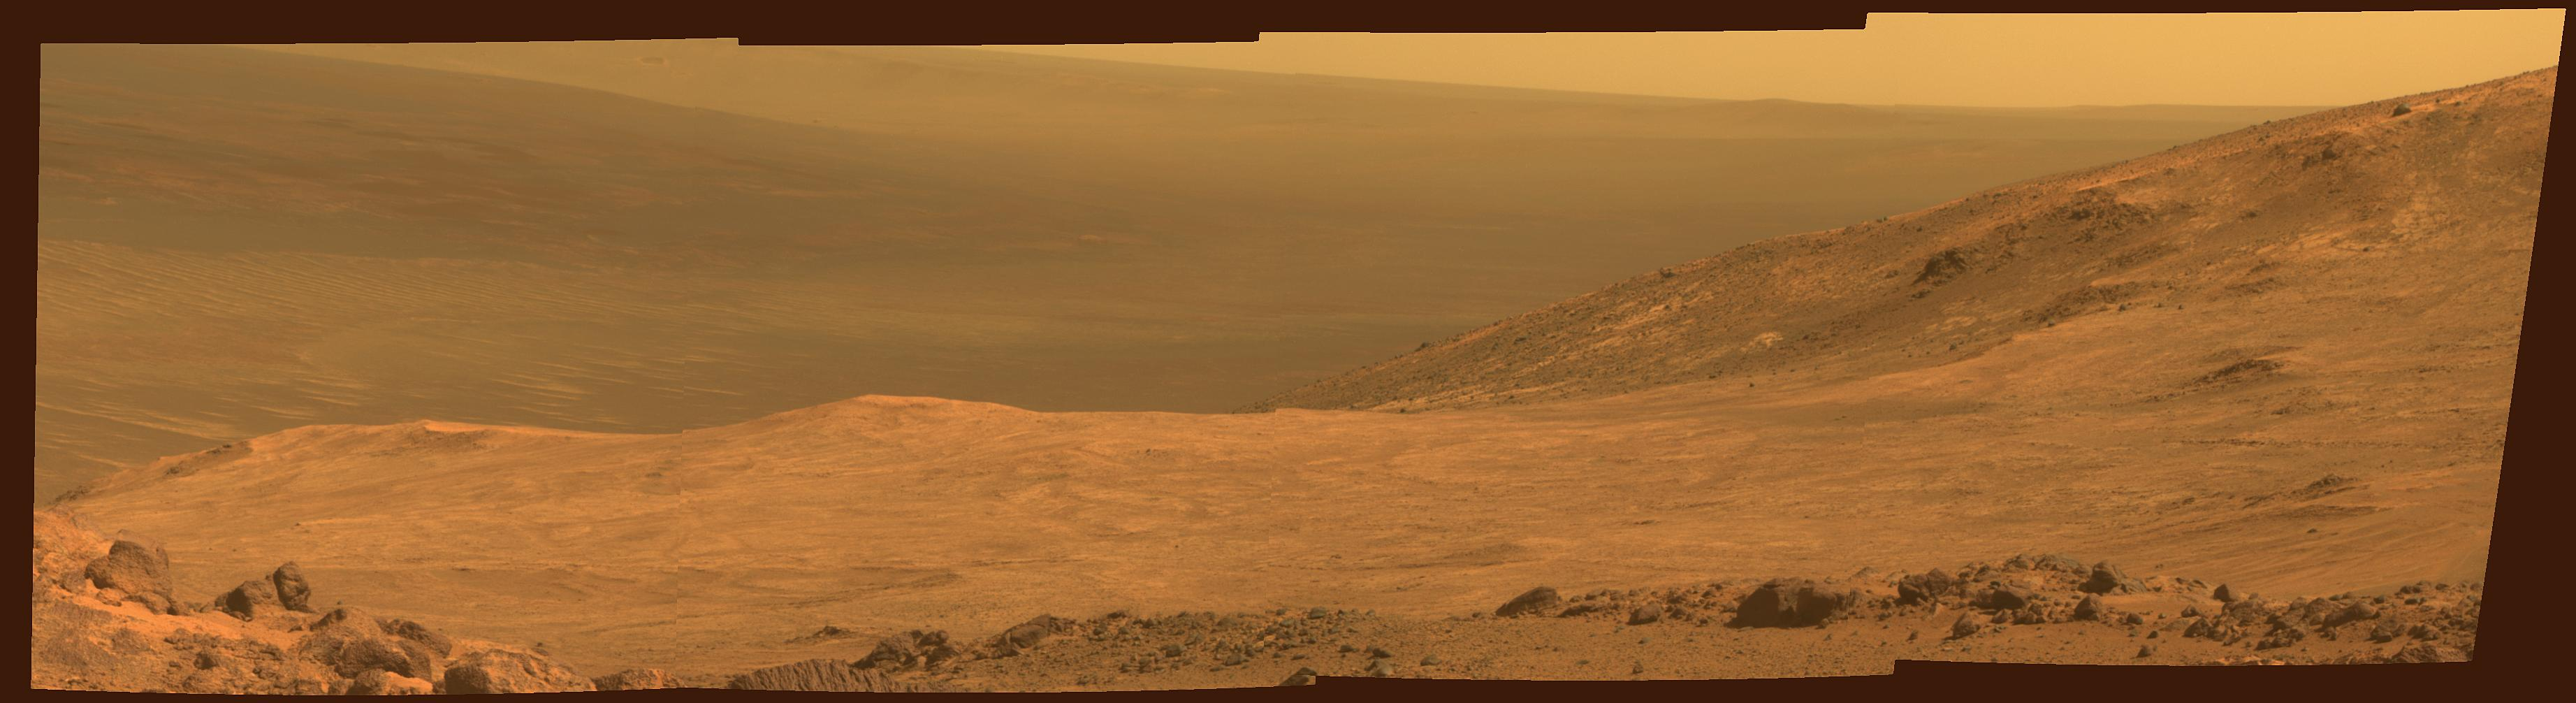 This view from NASA Mars Exploration Rover Opportunity shows part of Marathon Valley, a destination on the western rim of Endeavour Crater, as seen from an overlook north of the valley.